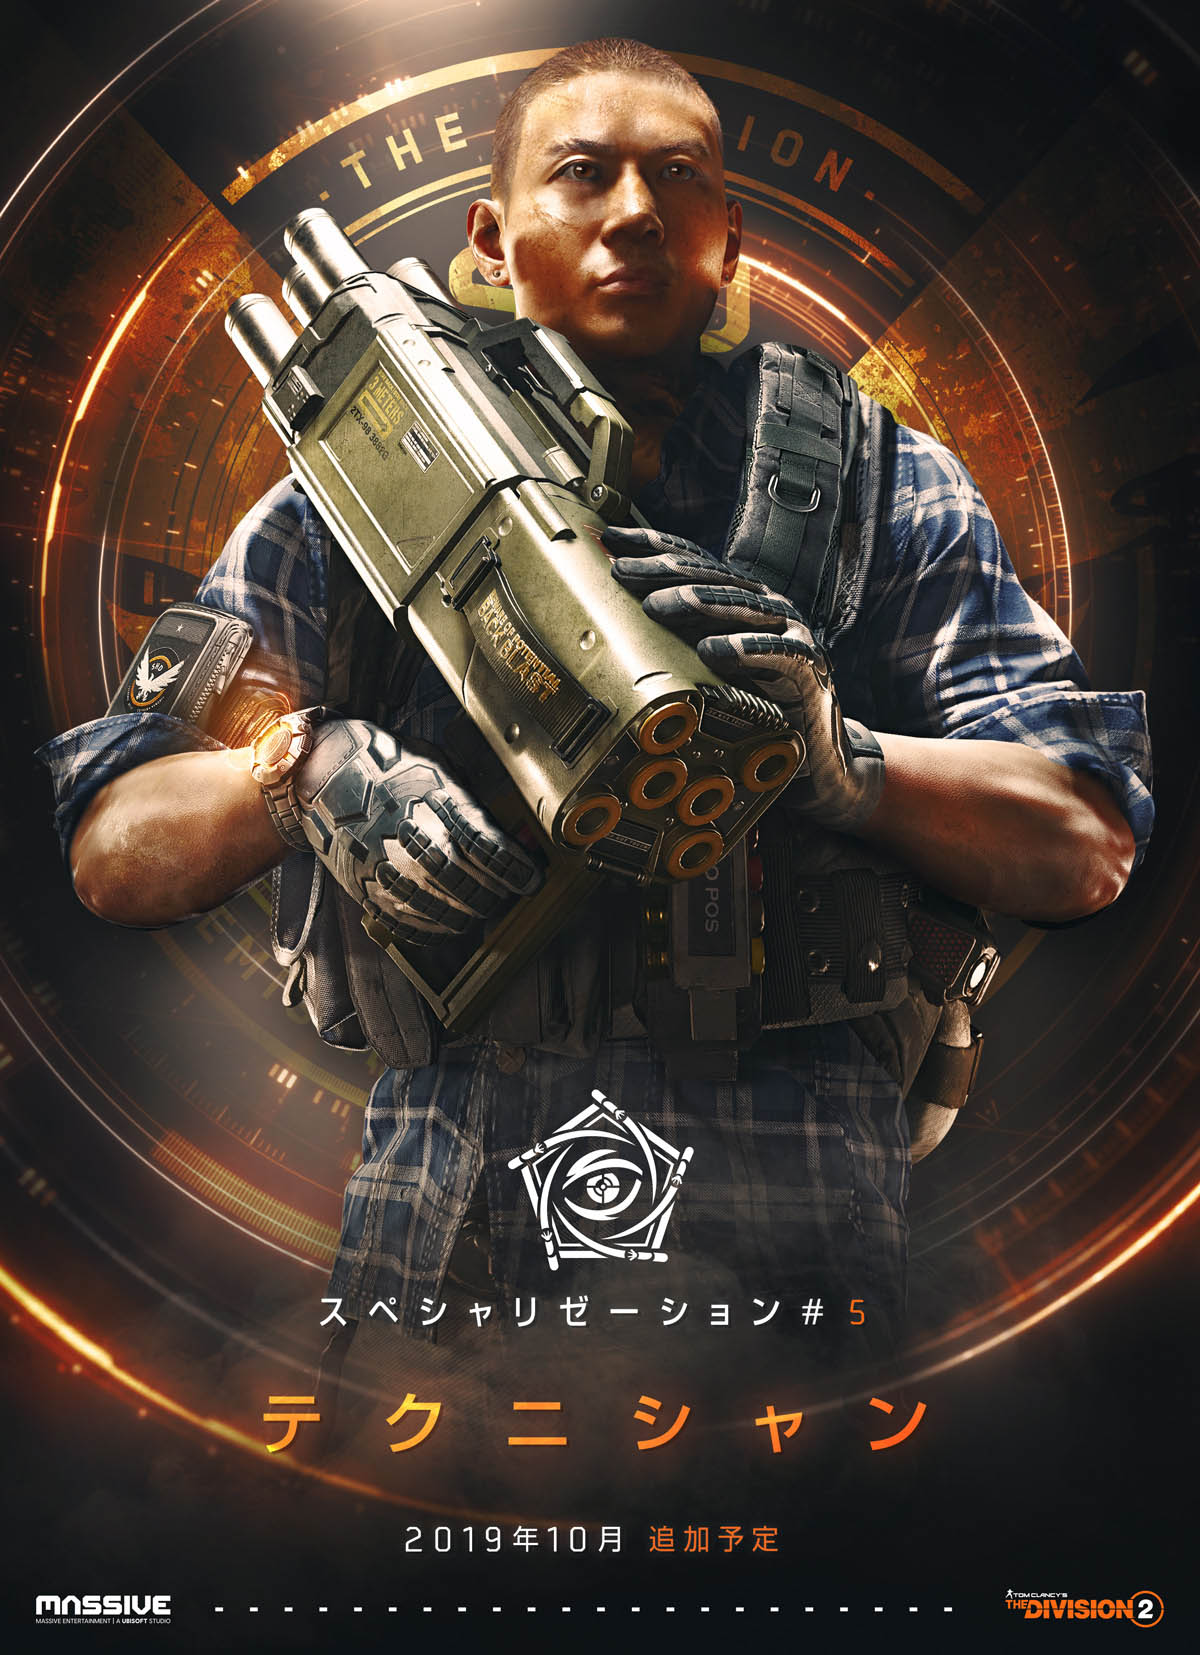 JP_TCTD2_Specialization5_MAIN_POSTER